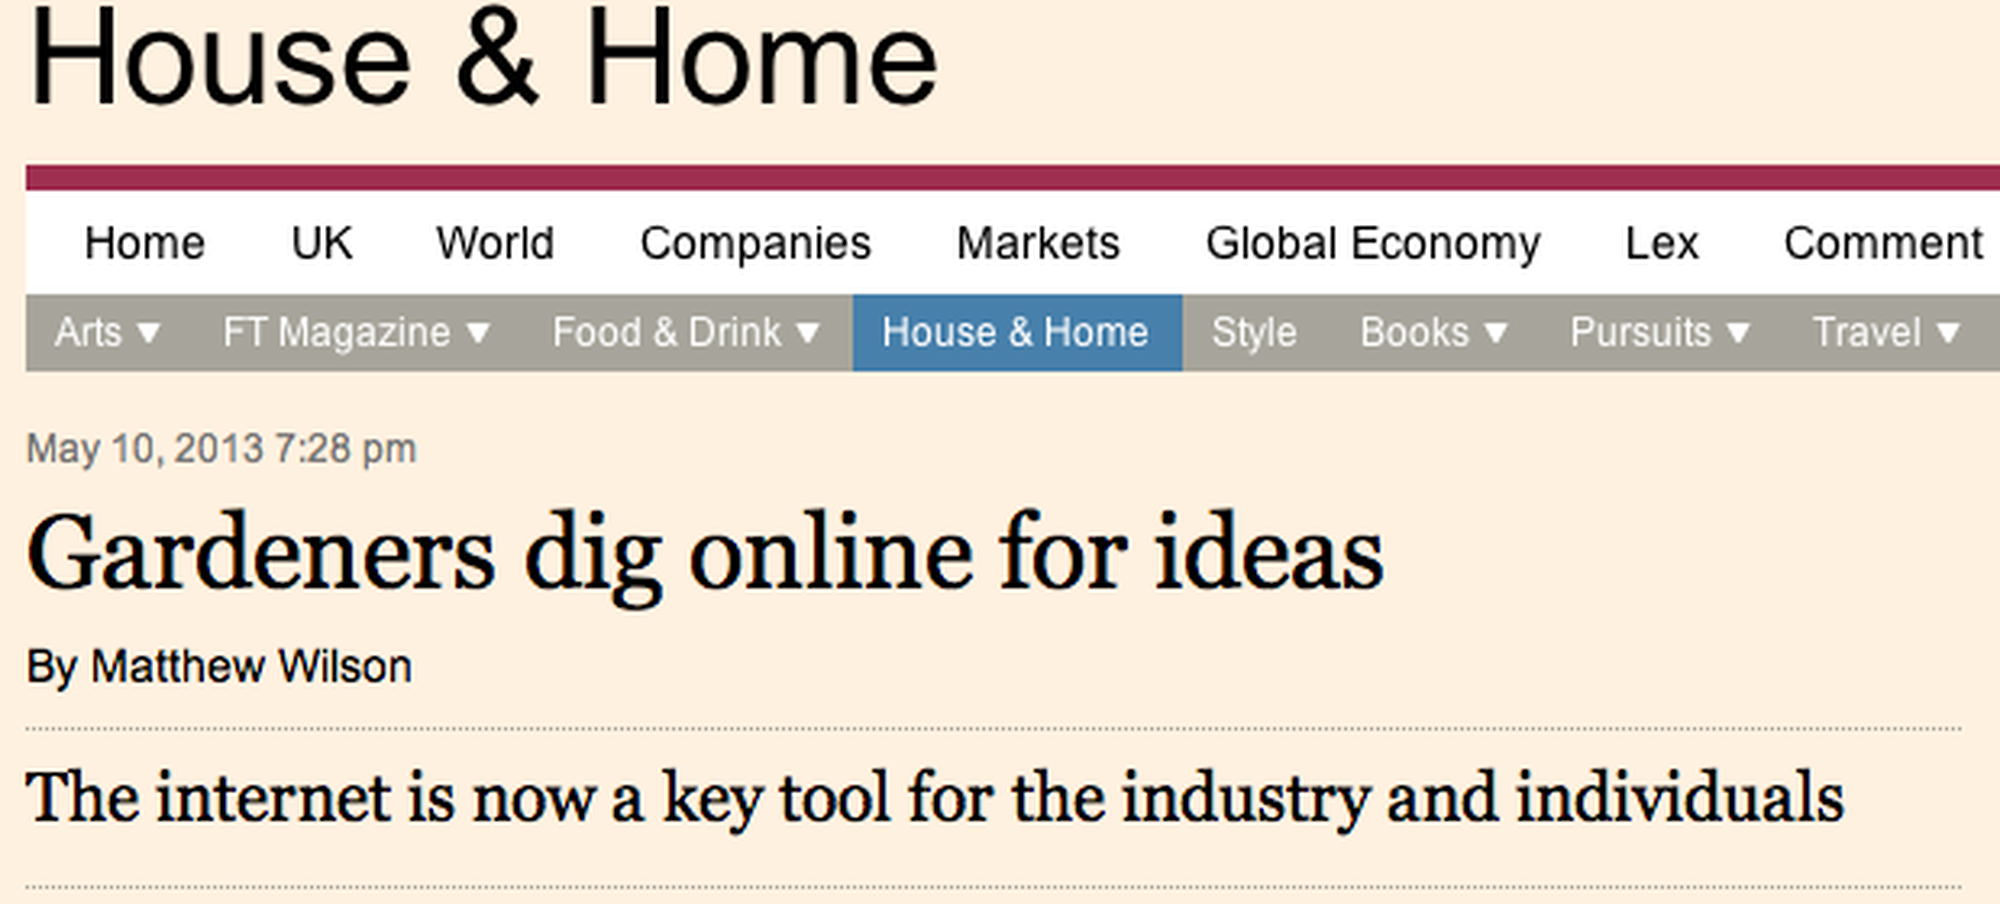 Today in the FT